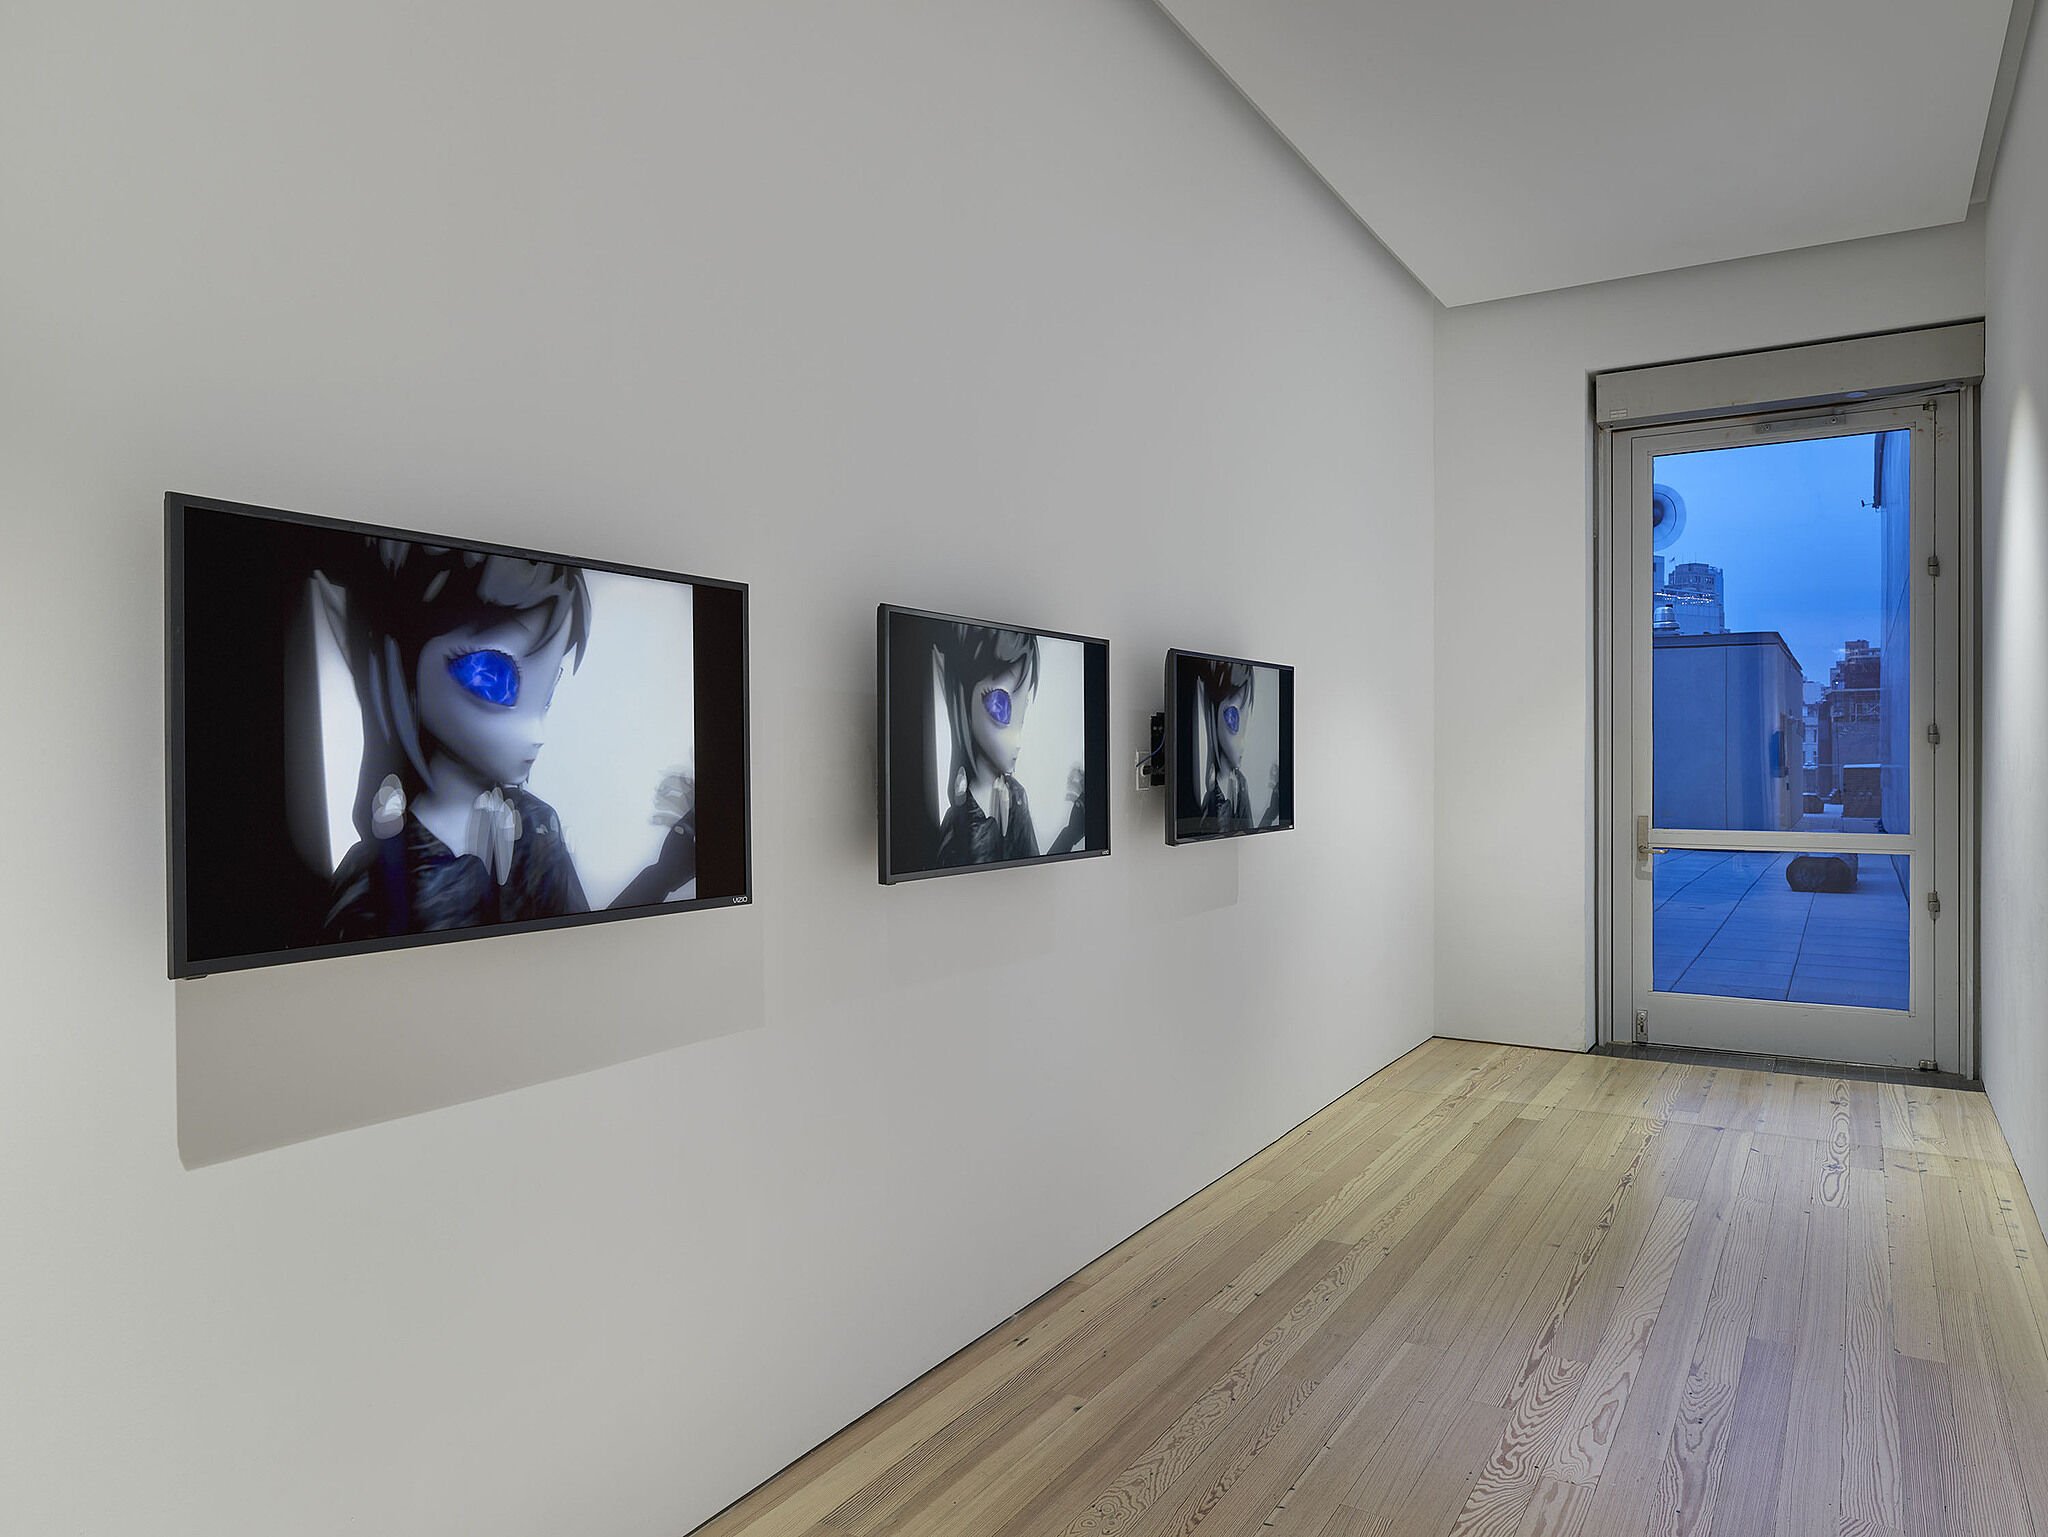 Three screens showing an alien figure on the wall of a gallery with a window.